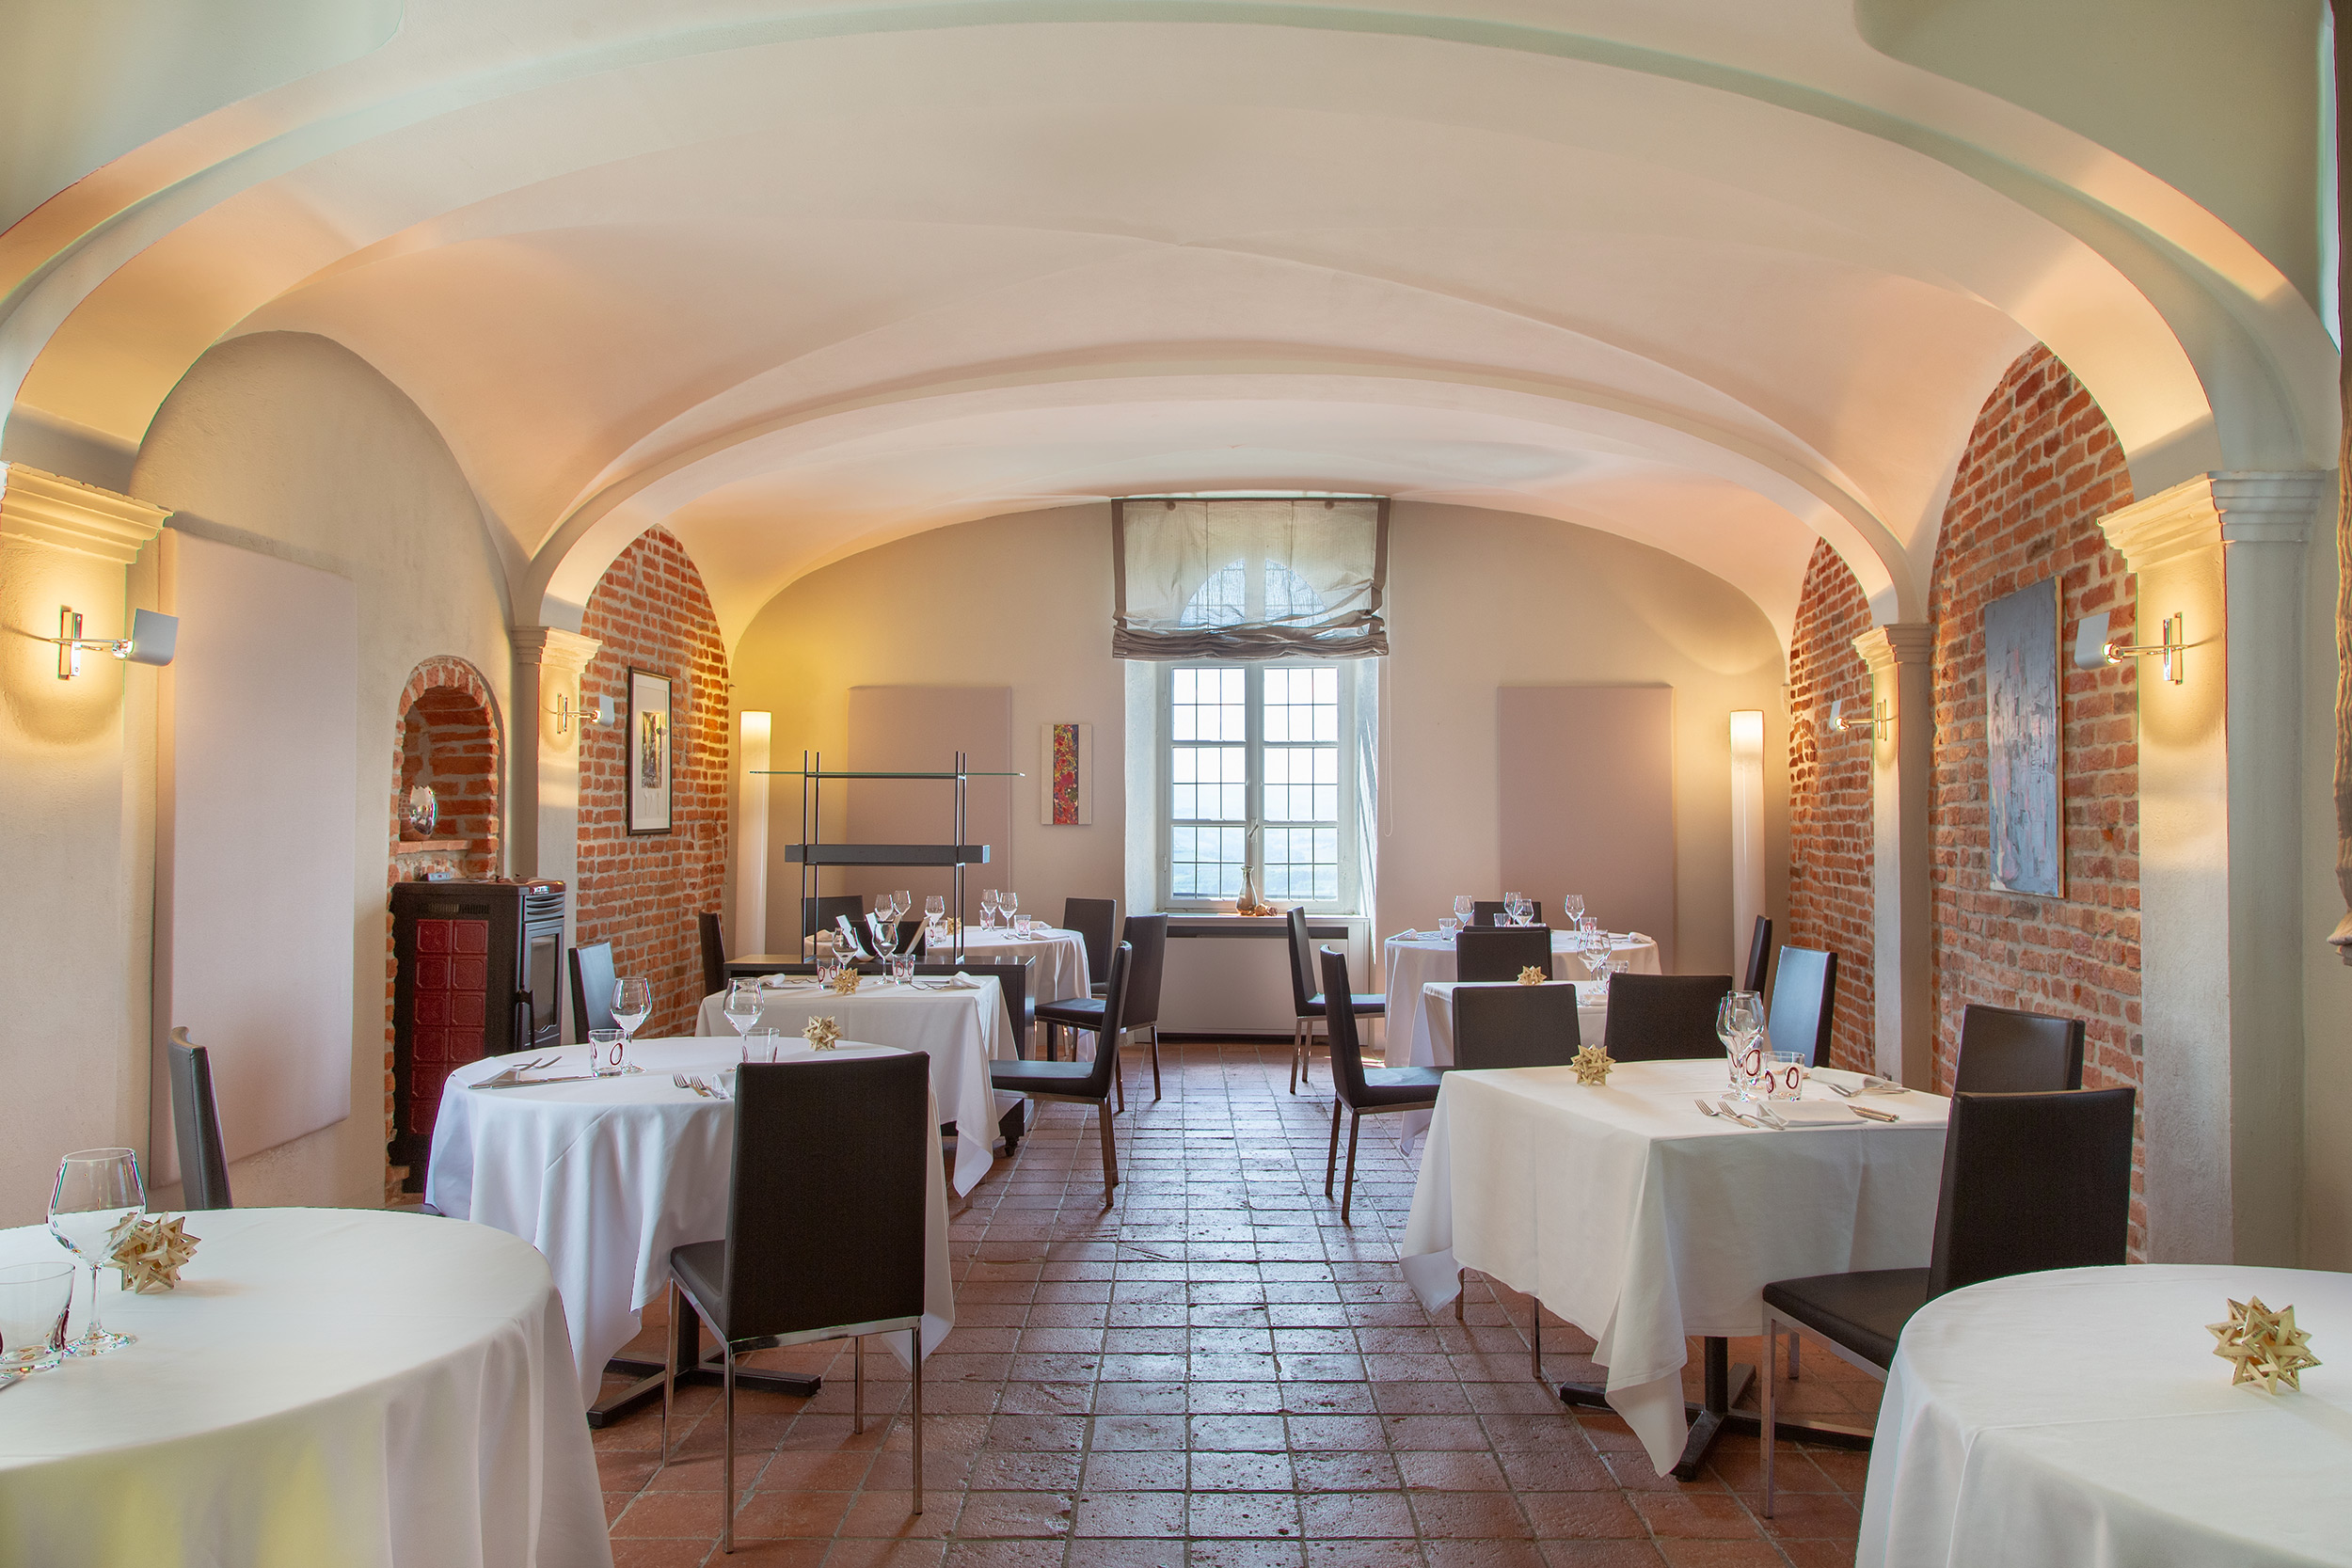 The restaurant room - Hotel Castello Santa Vittoria